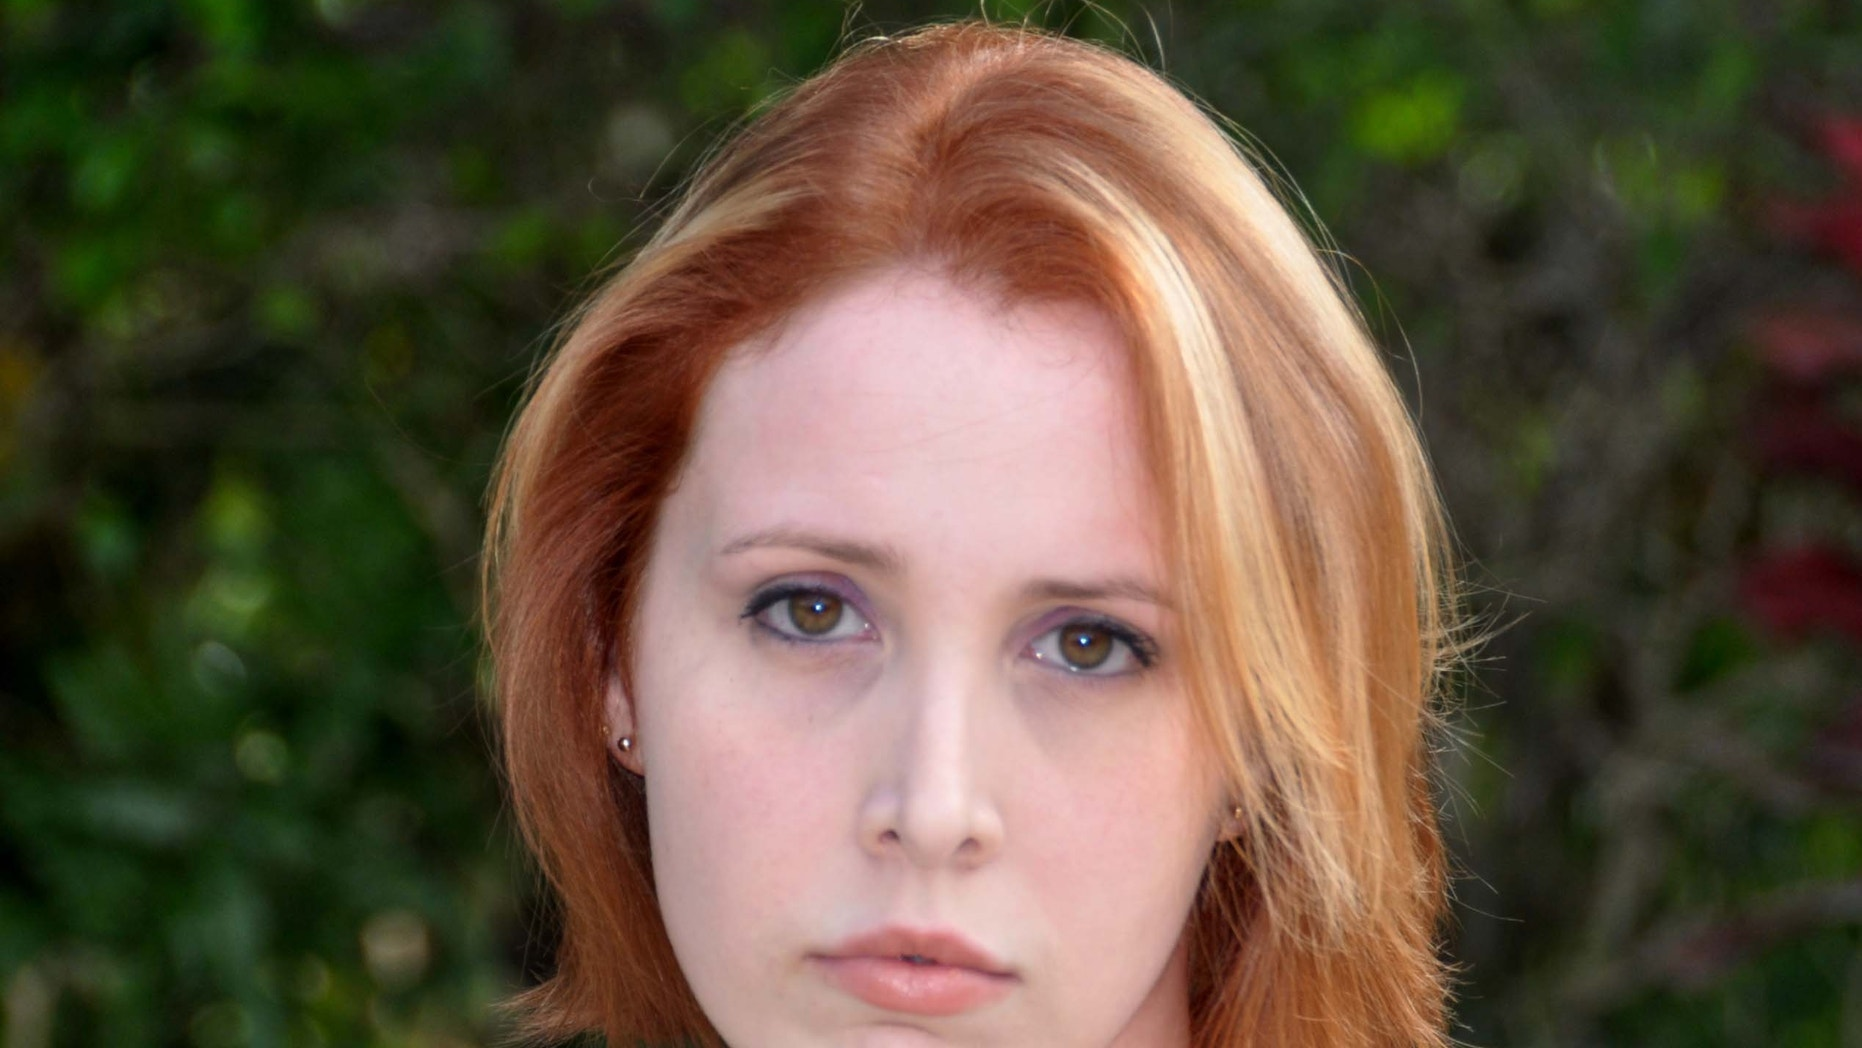 This undated image shows Dylan Farrow, daughter of Woody Allen and Mia Farrow.  Farrow recently wrote an open letter to The New York Times detailing alleged abuse by Woody Allen when she was 7-year-old. The abuse claims in 1992 were investigated but Allen was never charged with a crime.